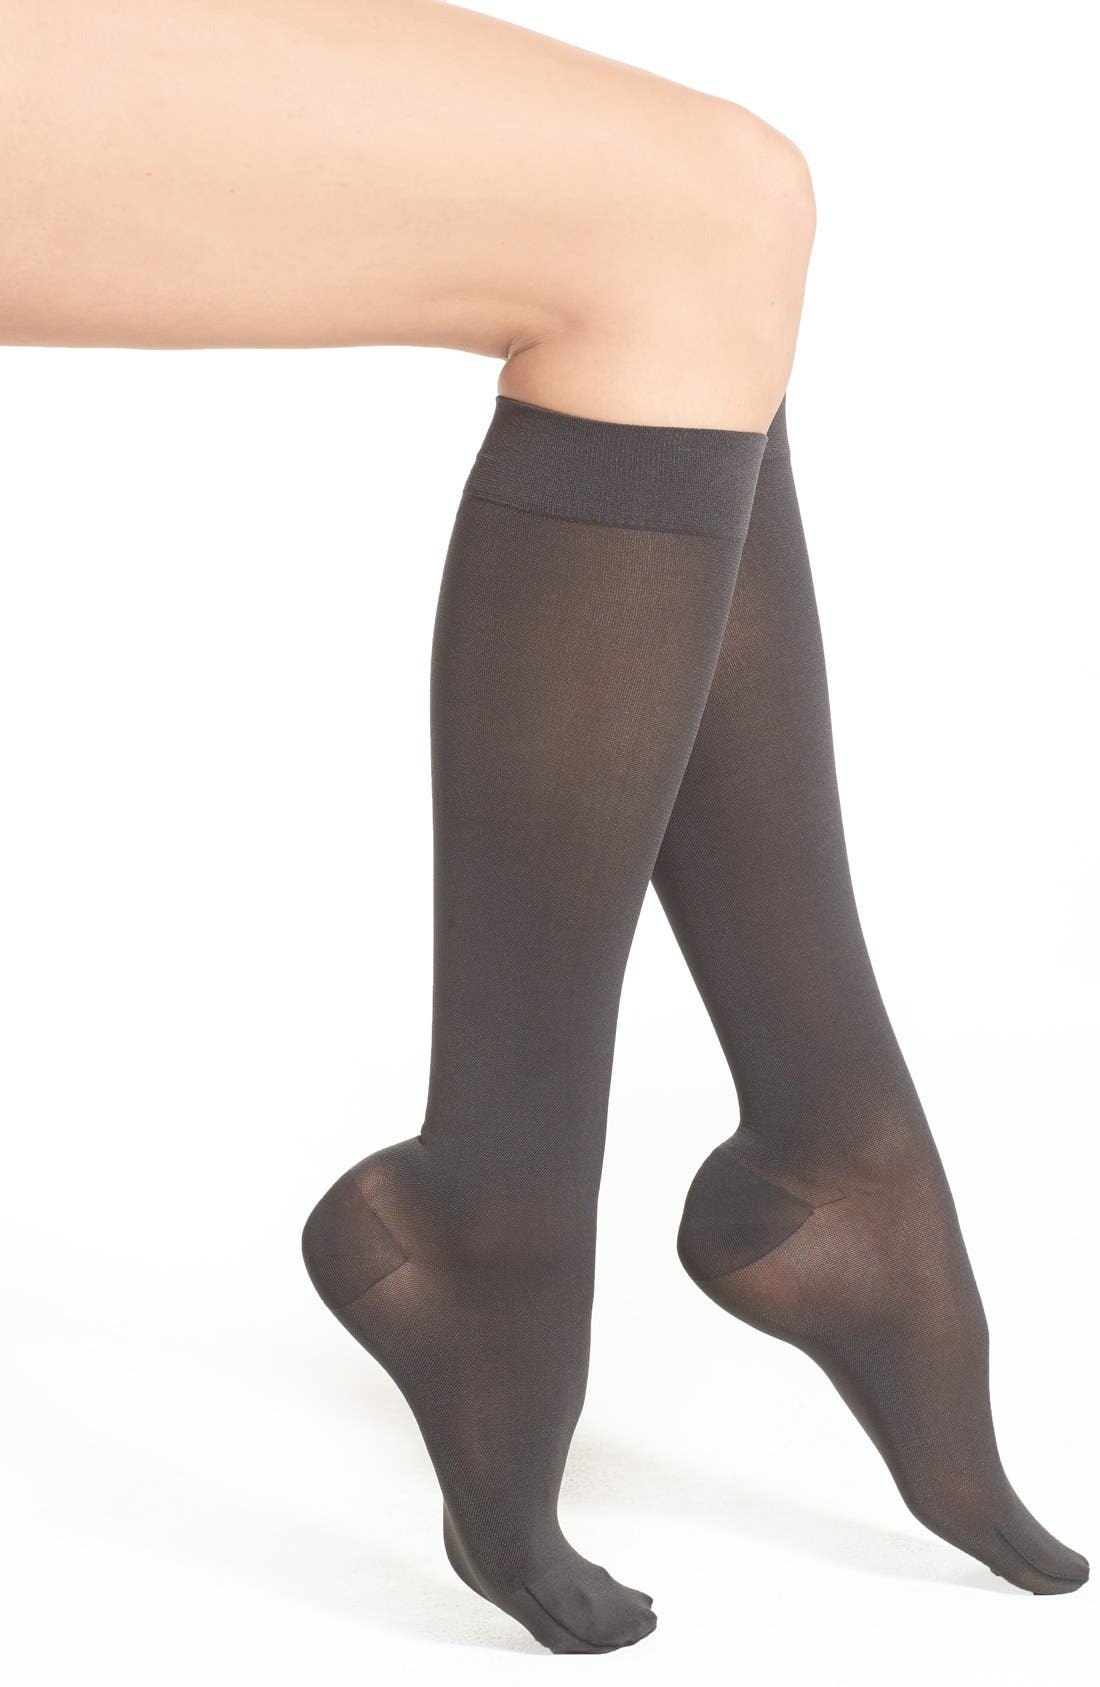 INSIGNIA BY SIGVARIS Headliner Compression Knee High Socks